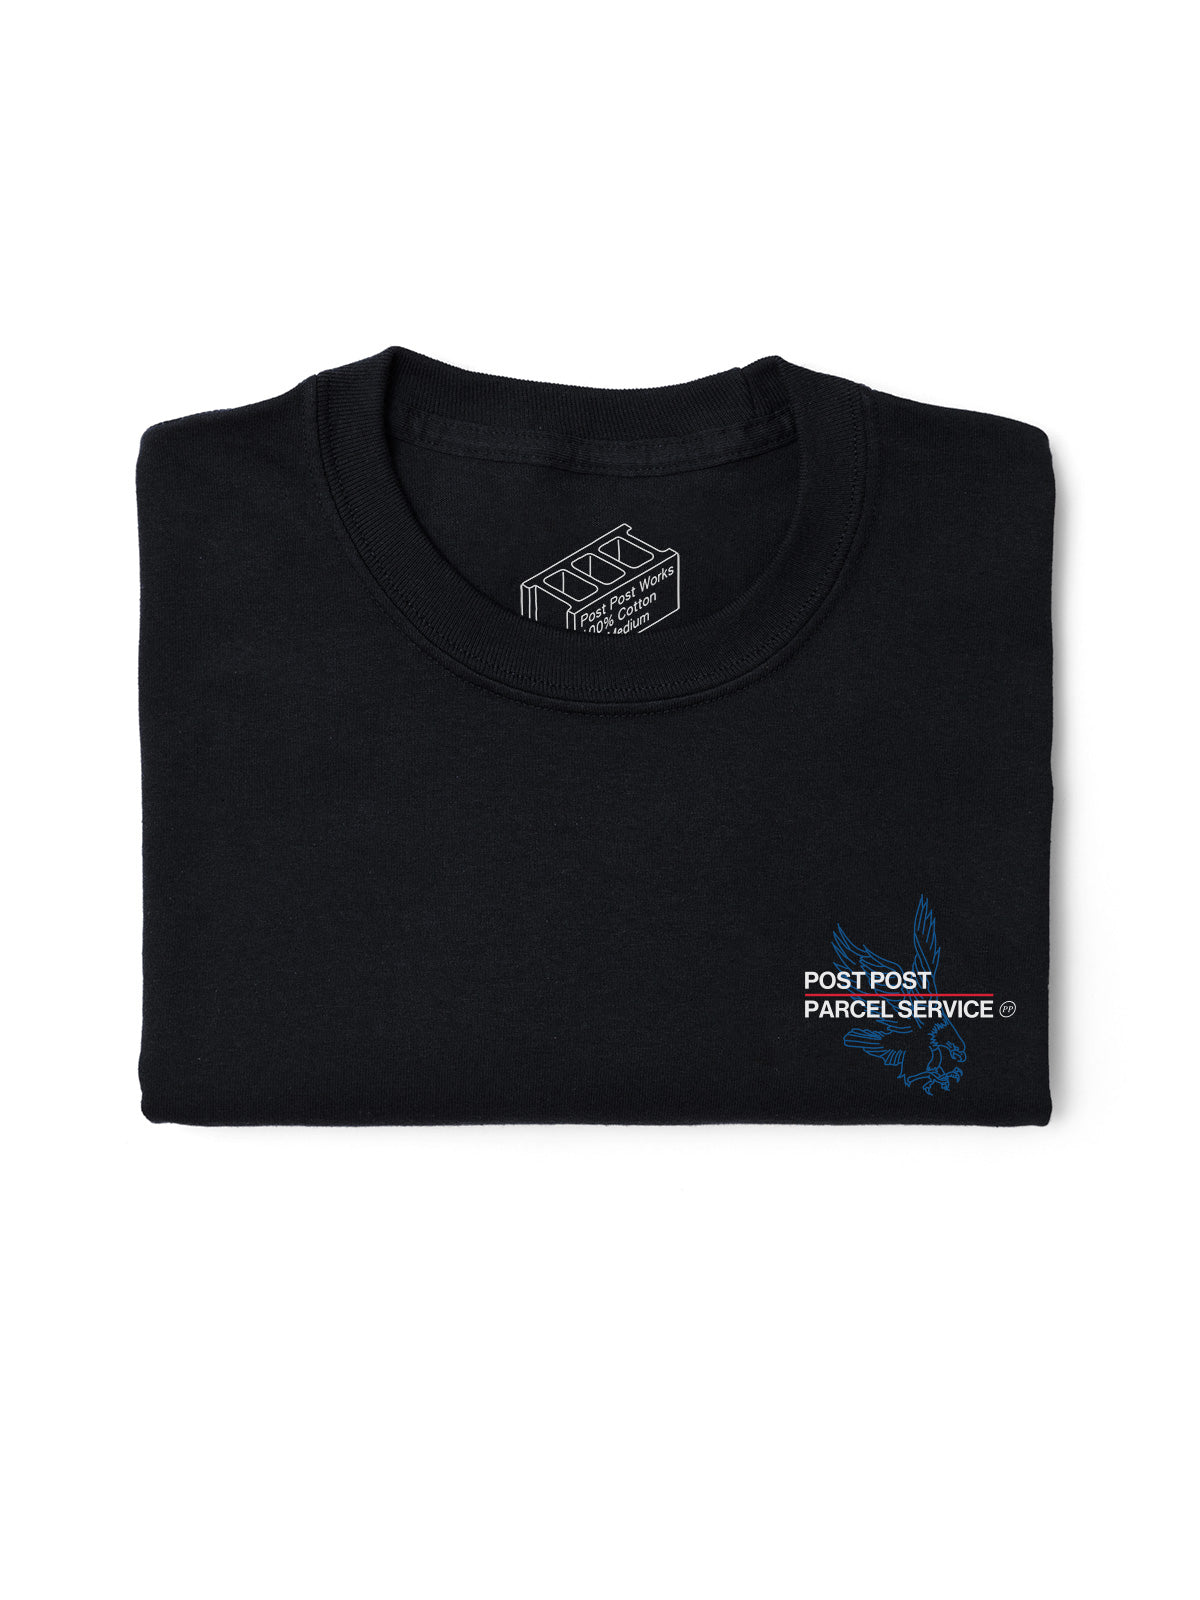 Post Post Parcel Service Tee, Black